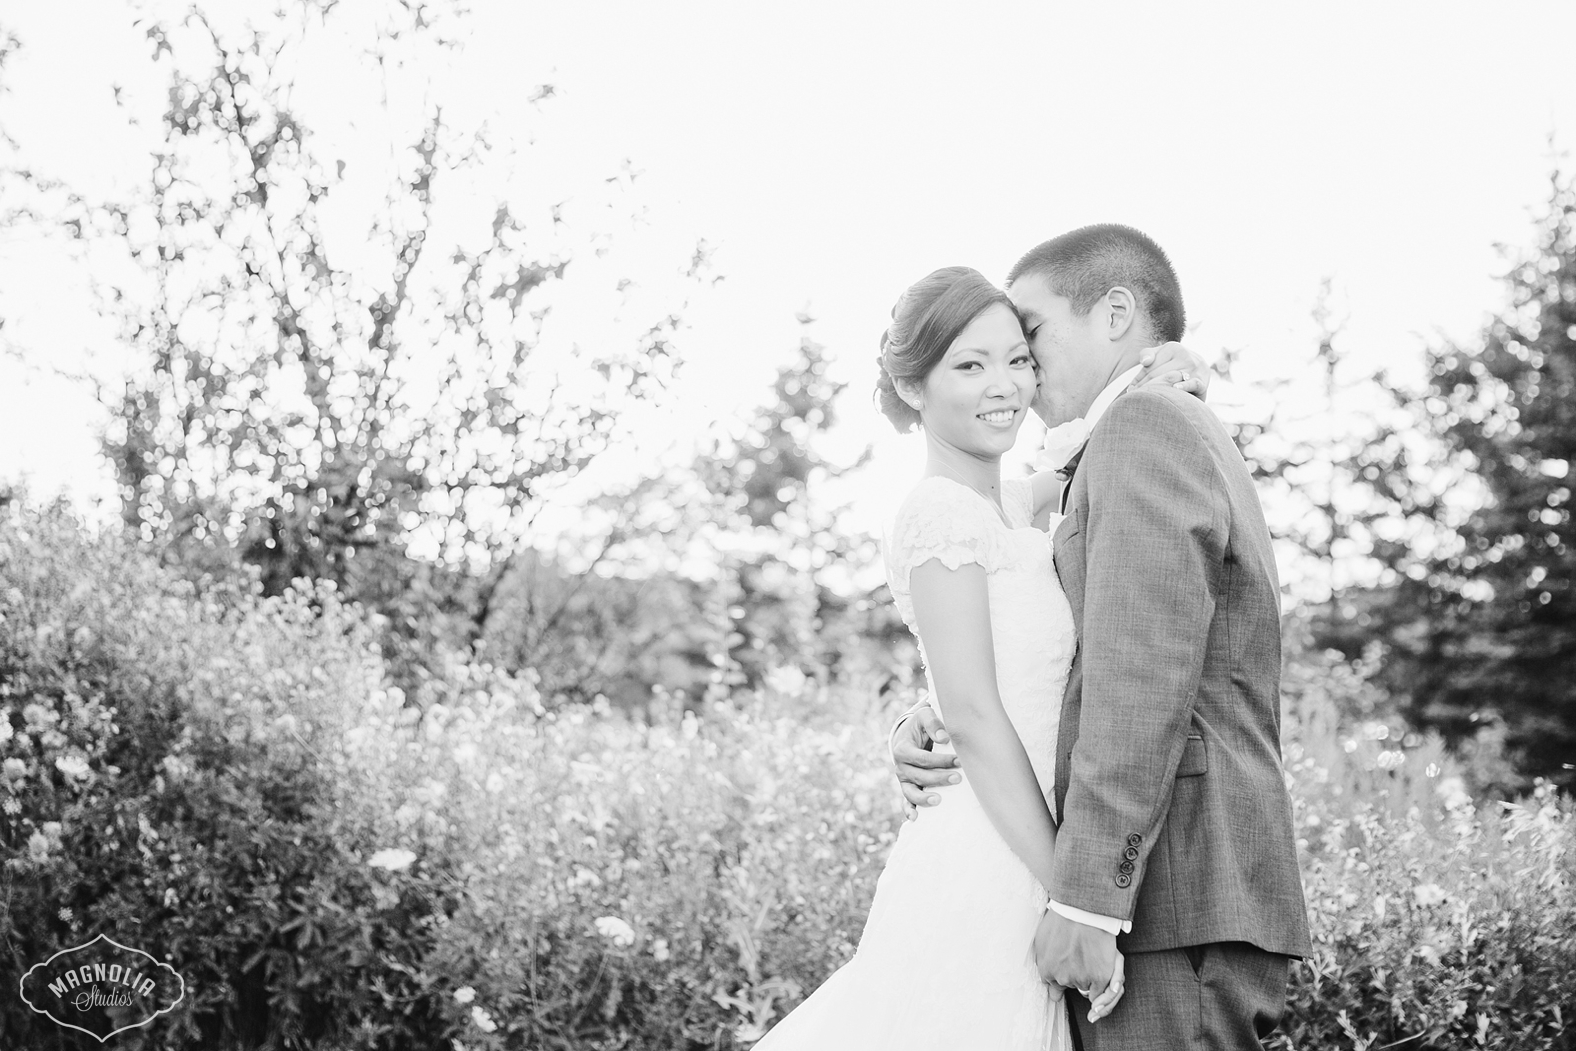 Magnolia_Studios_Wedding_0909